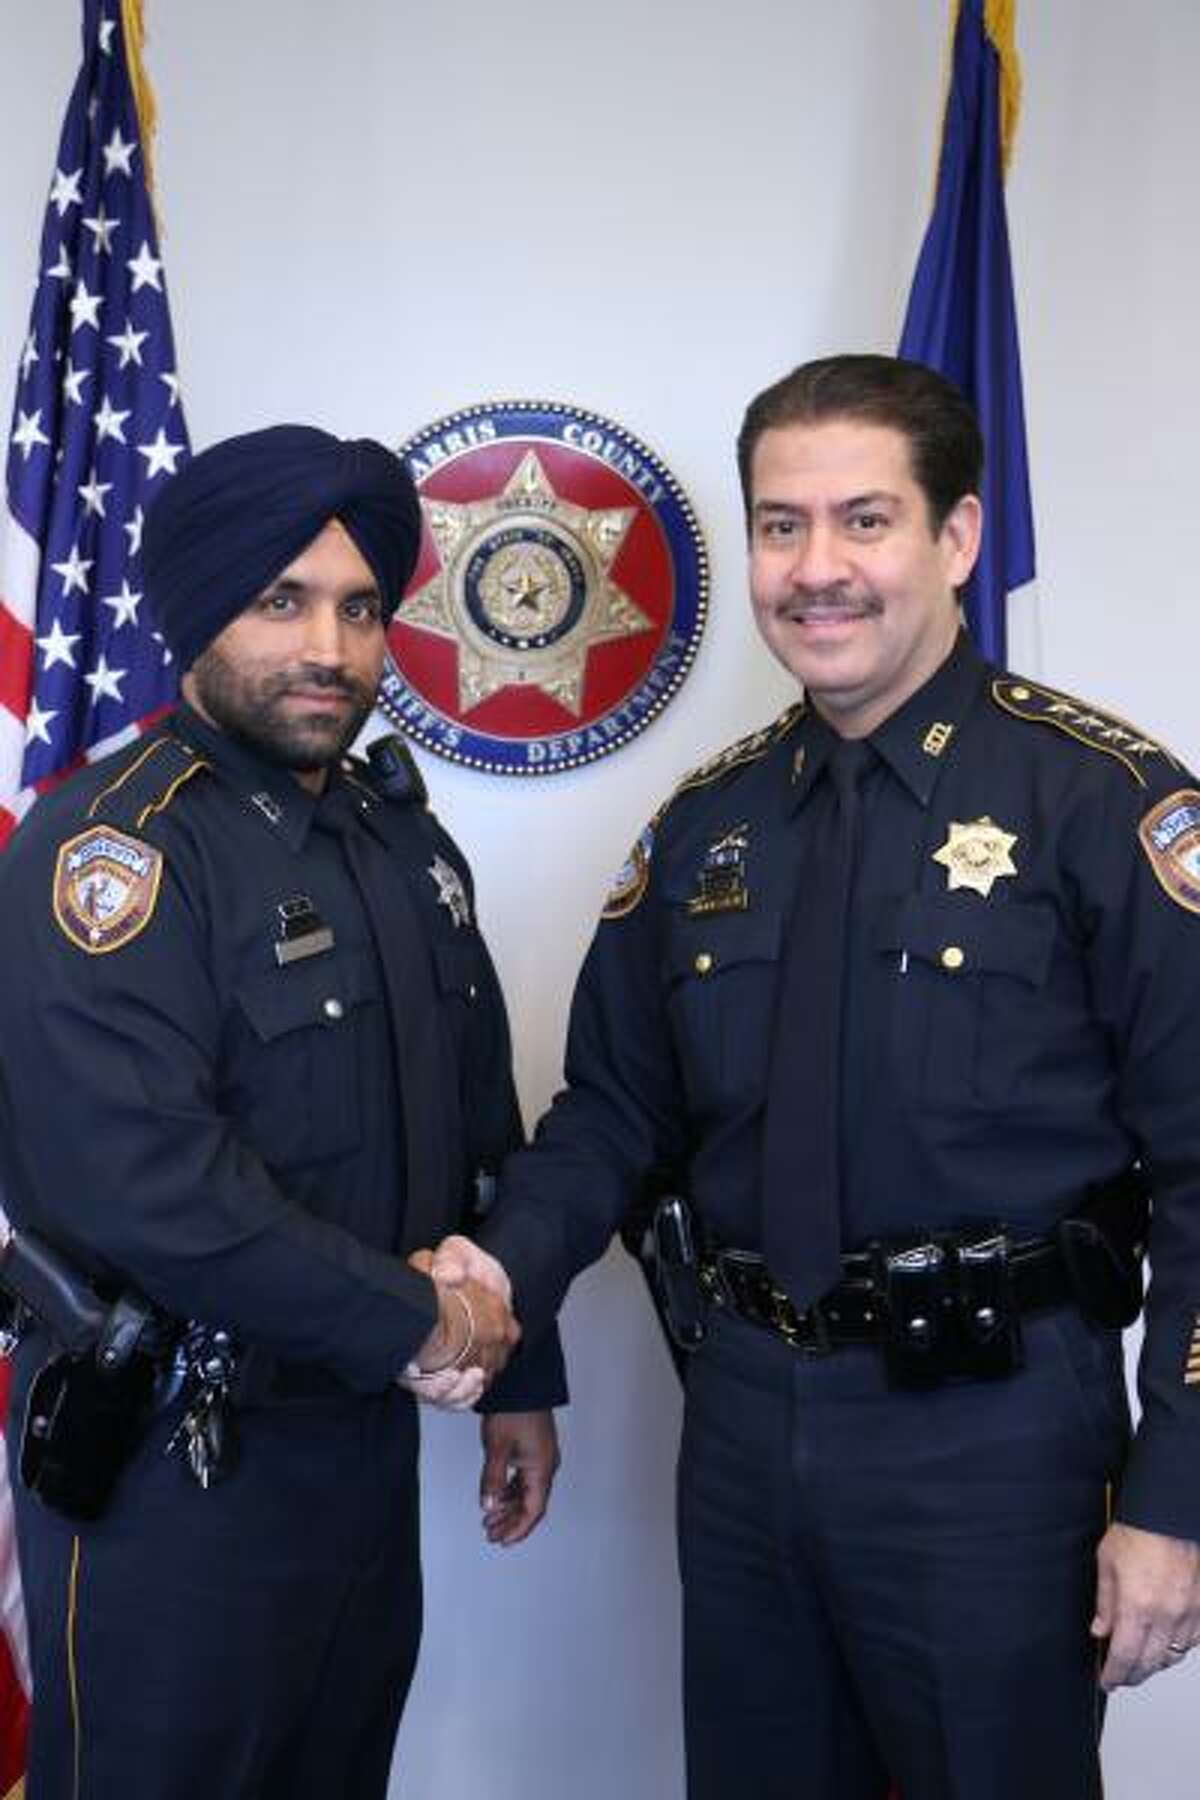 Harris County Sheriff's Deputy Sandeep Dhaliwal, left, and then-sheriff Adrian Garcia. Garcia, now the Harris County commissioner for Precinct 2, wants to name the Harris County Criminal Justice Center after Dhaliwal.